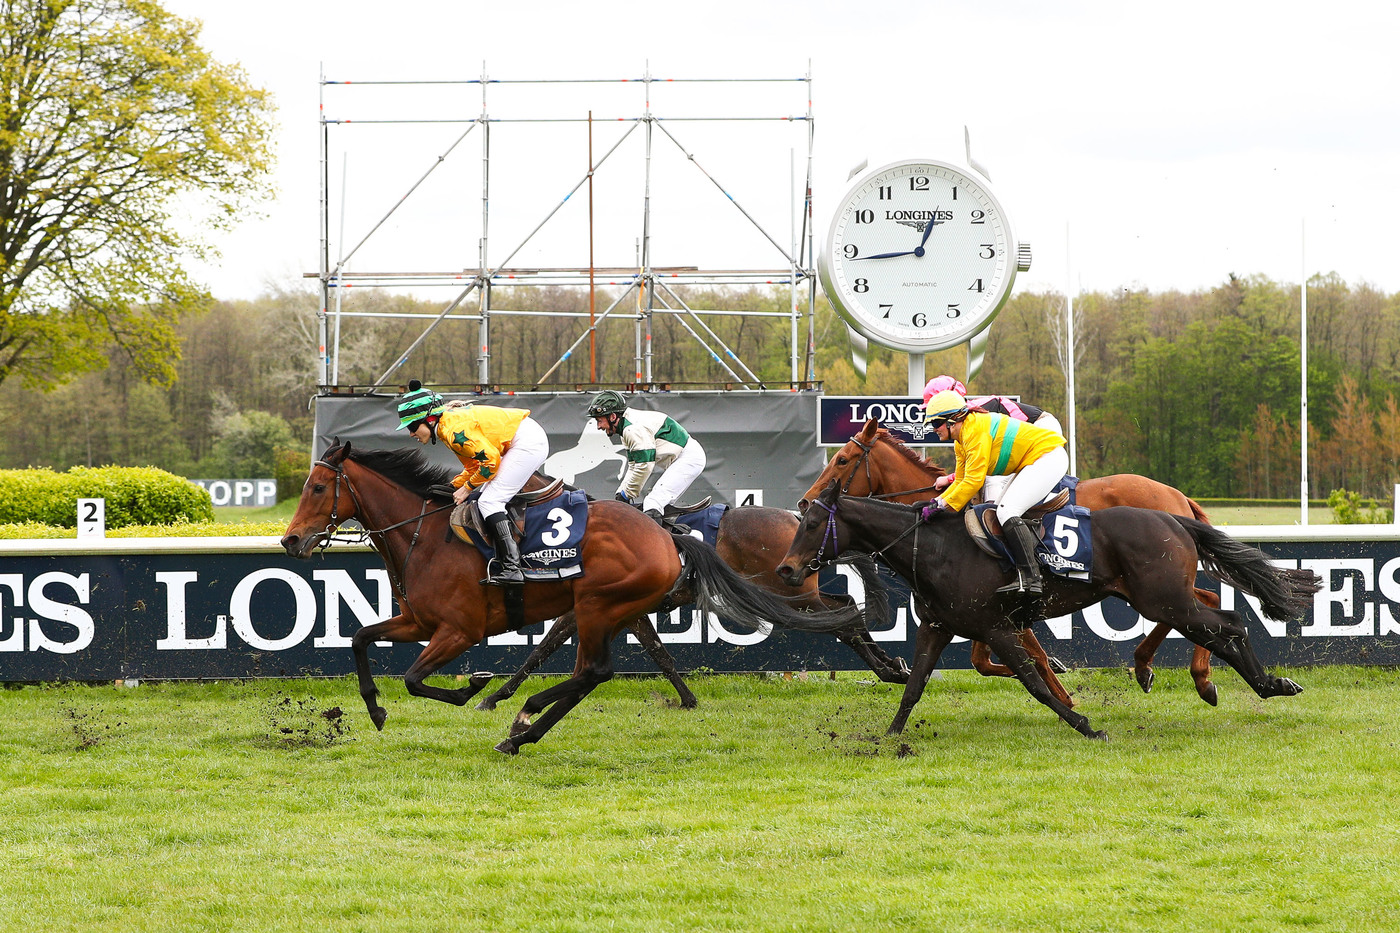 Longines Flat Racing Event: Longines presented its exclusive offer in sports timing services including a brand new application 2